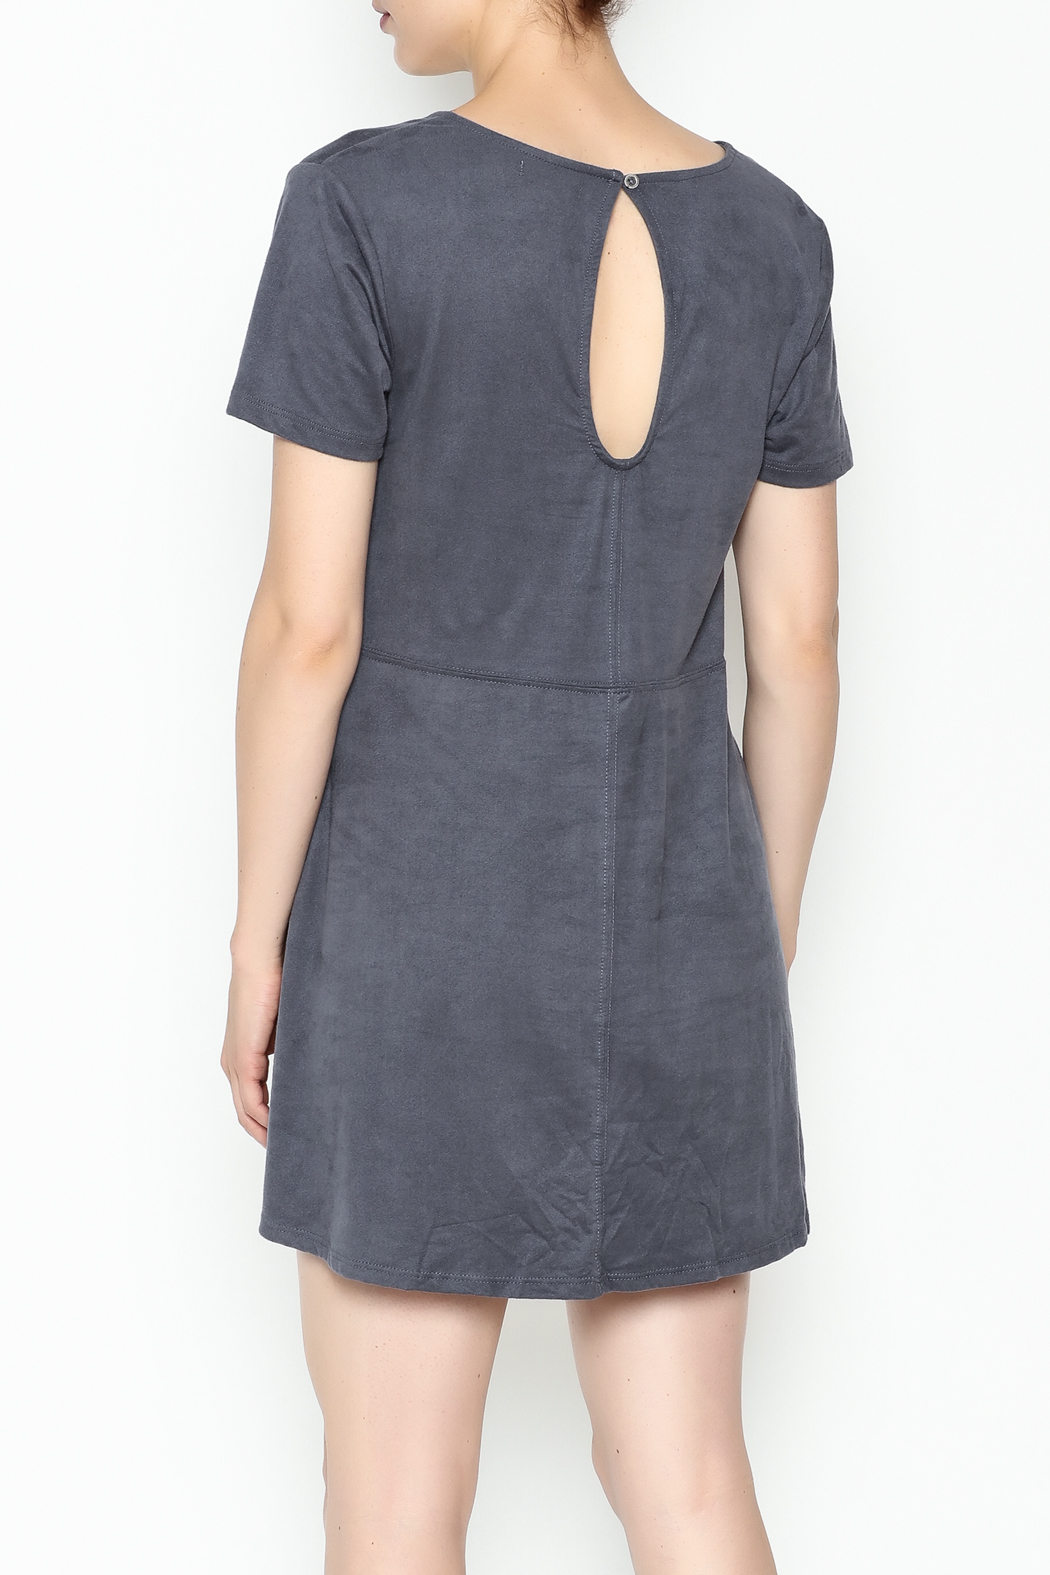 Zsupply Faux Suede Shift Dress - Back Cropped Image